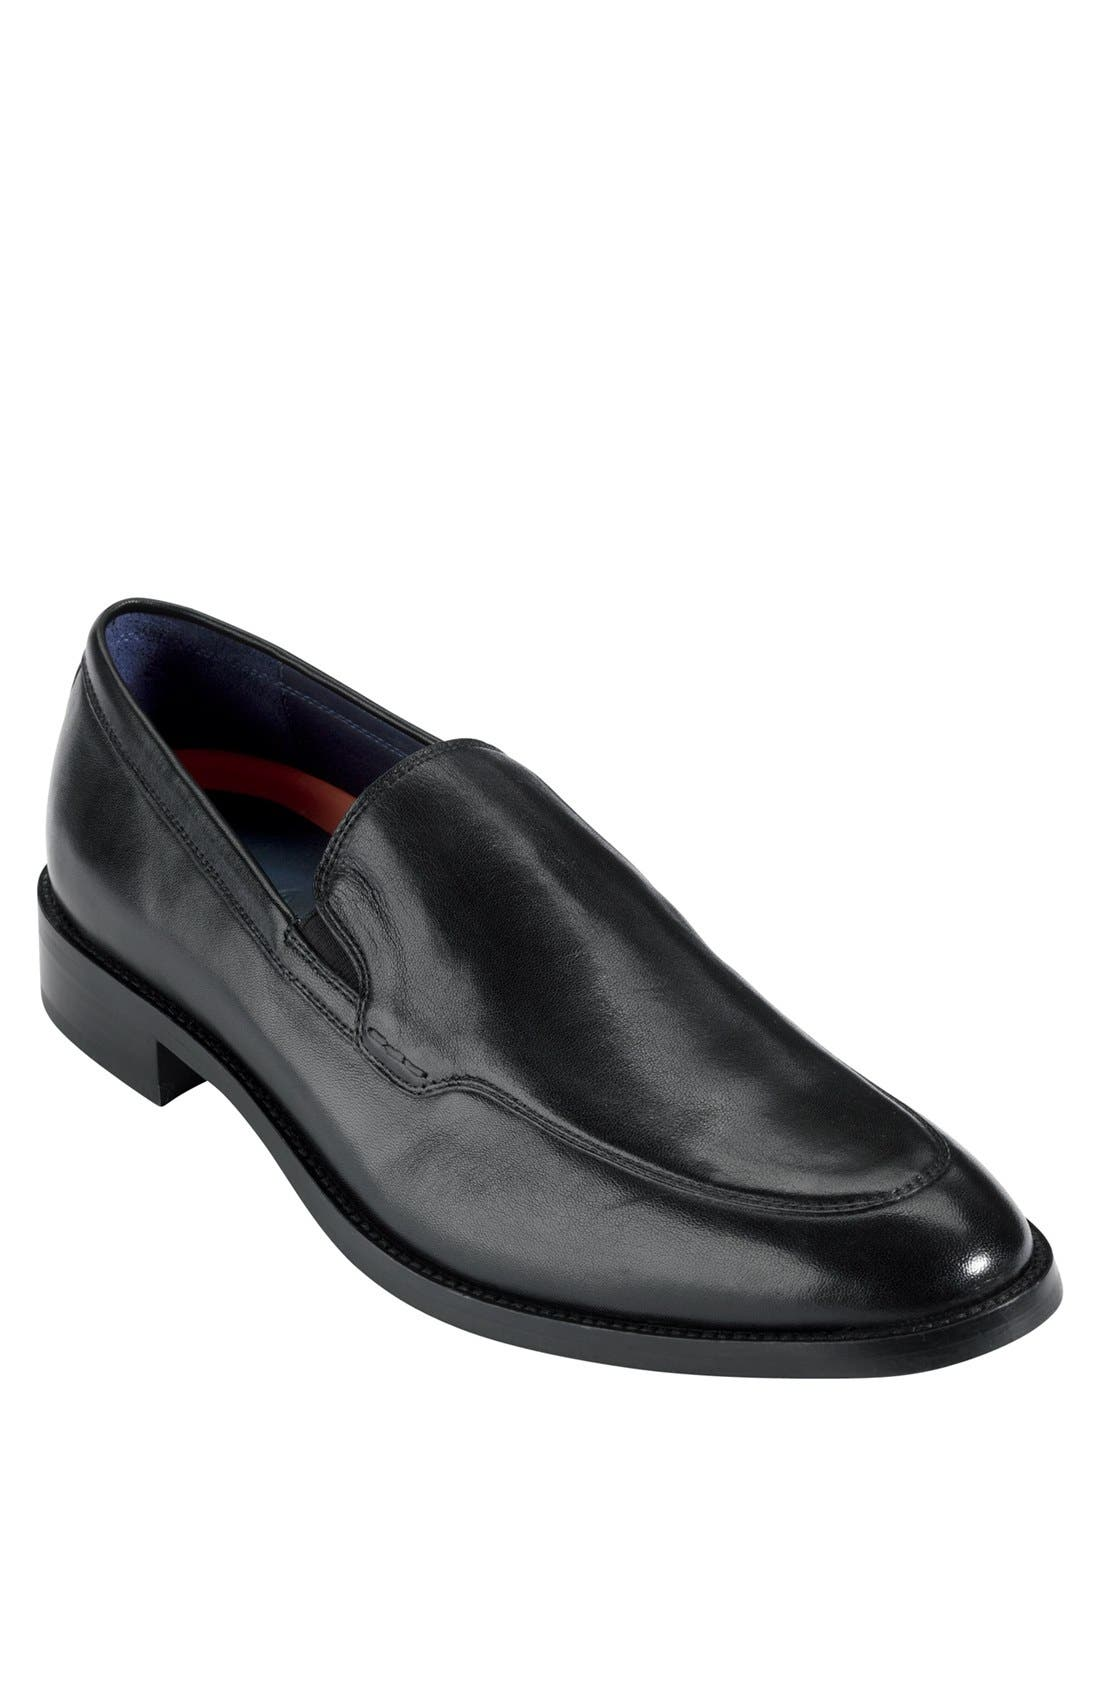 Main Image - Cole Haan 'Lenox Hill' Venetian Loafer (Men)